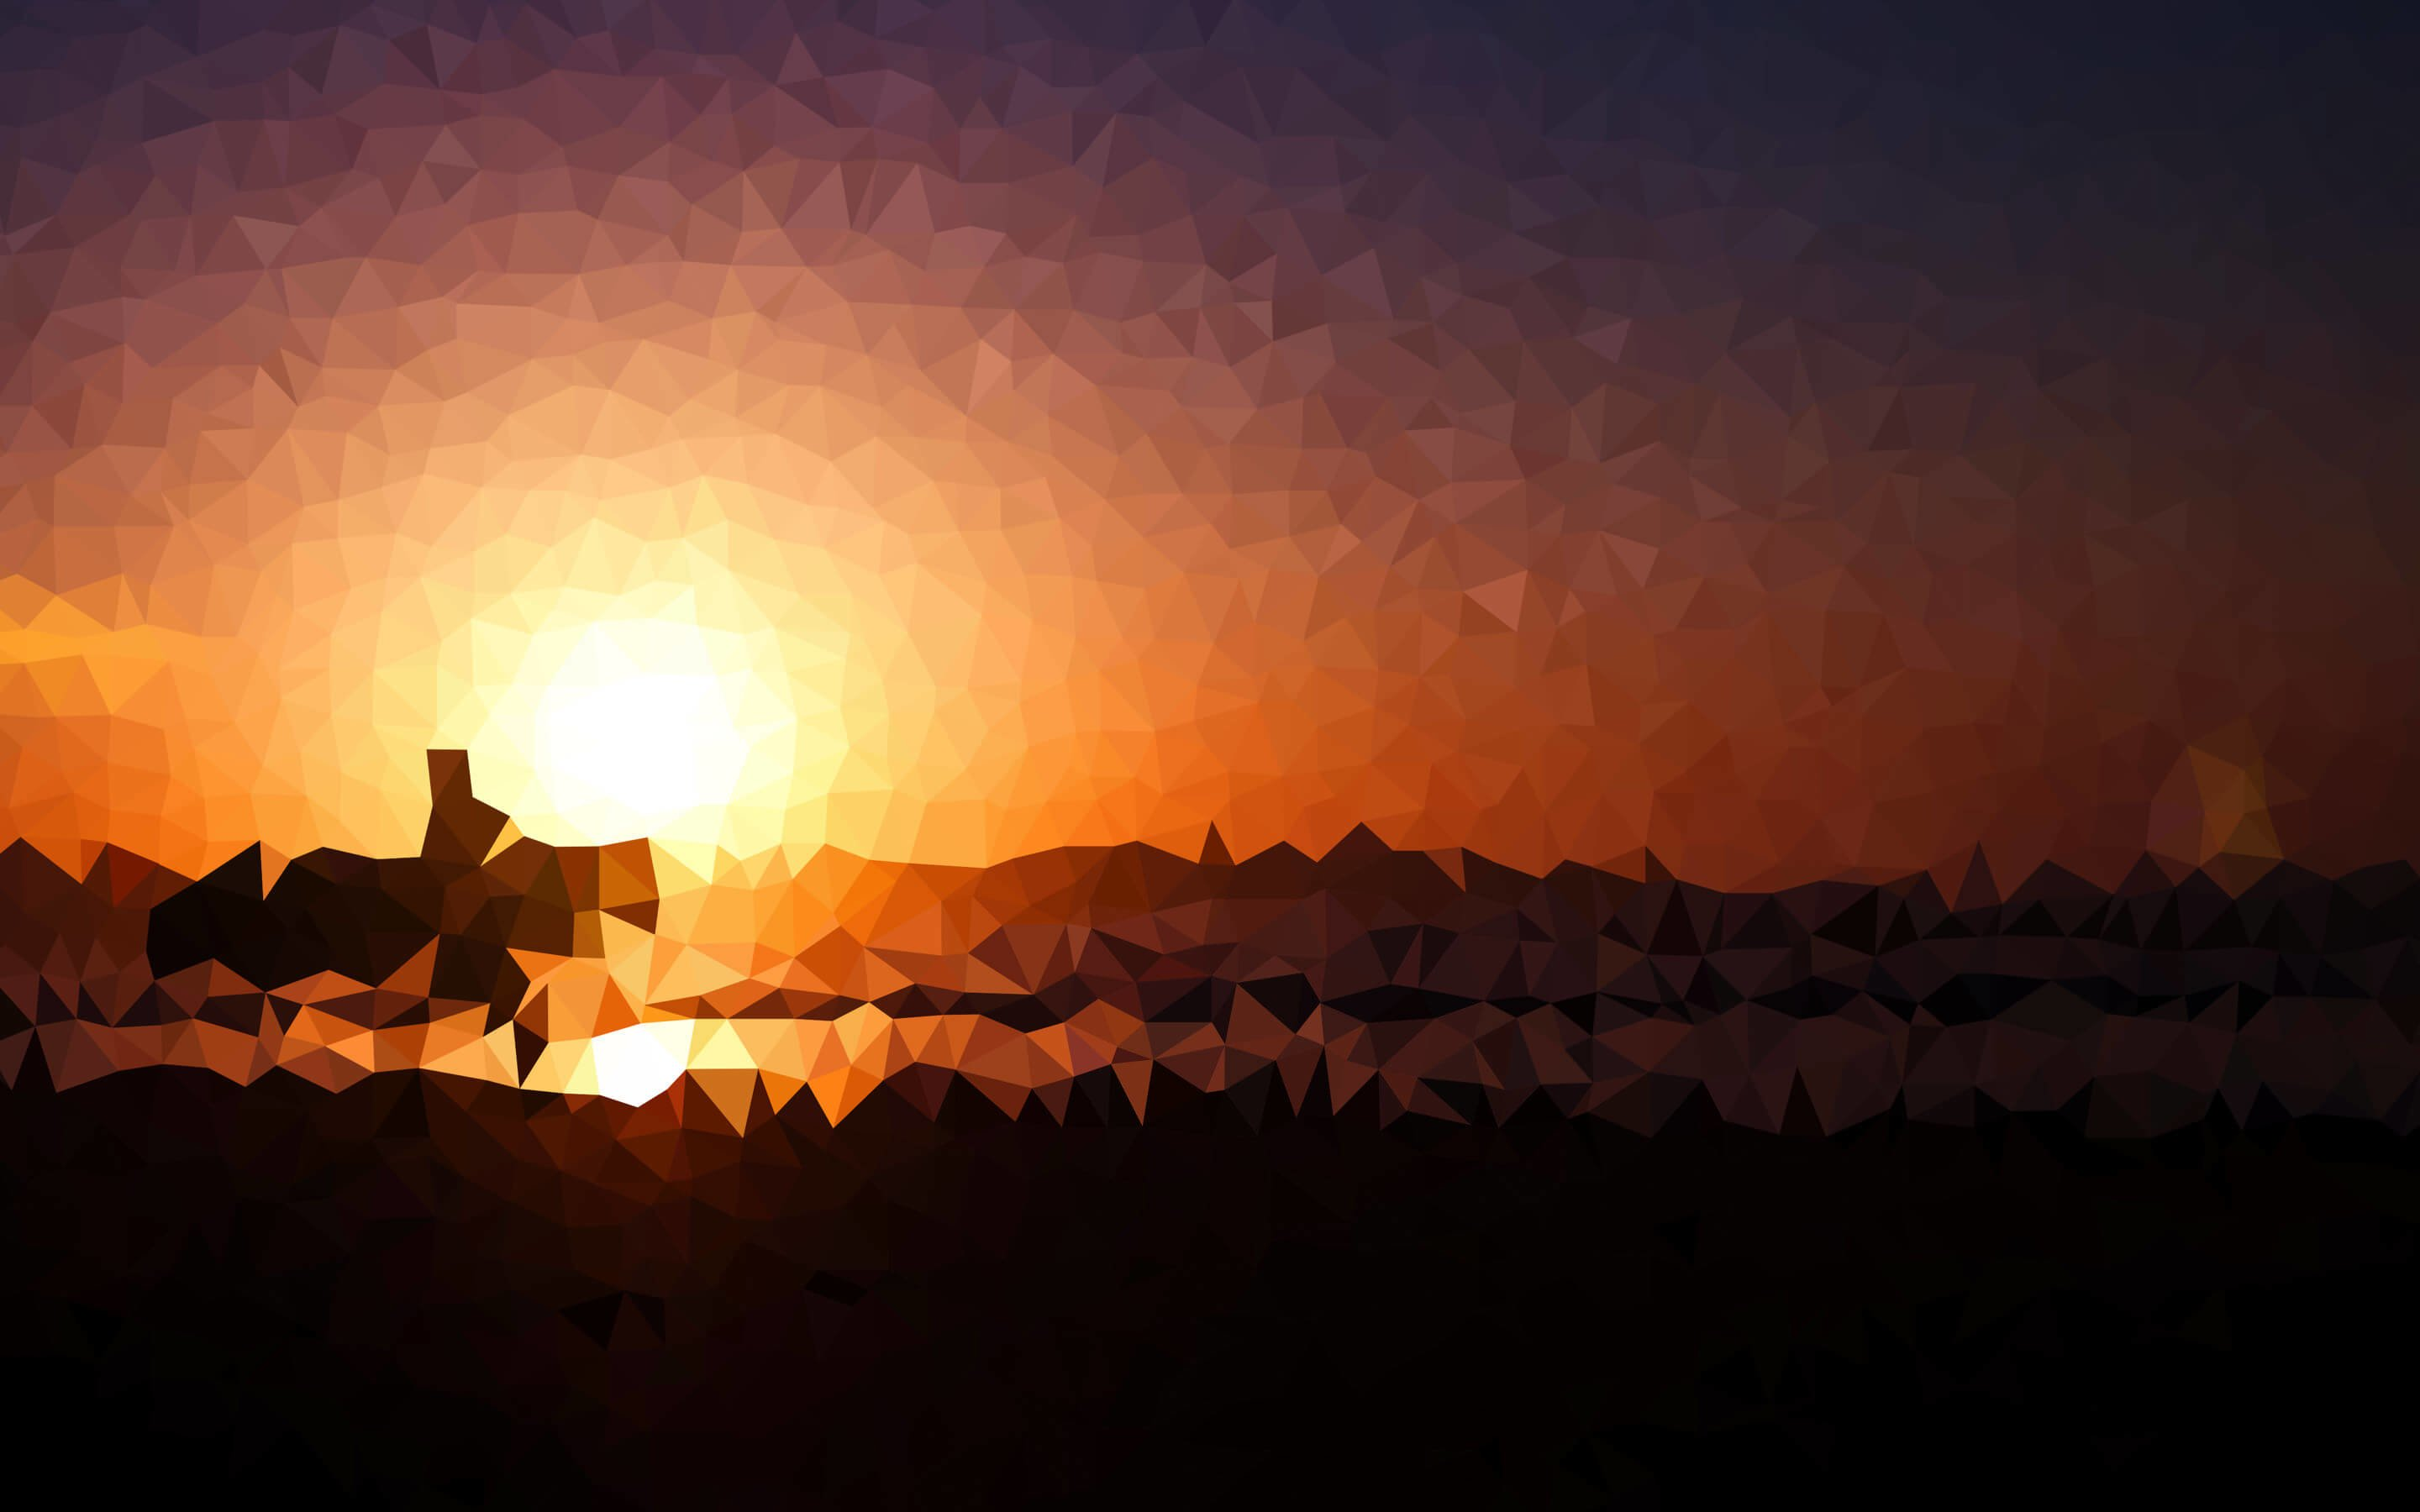 Low Poly Sunset Wallpaper for Desktop 2880x1800